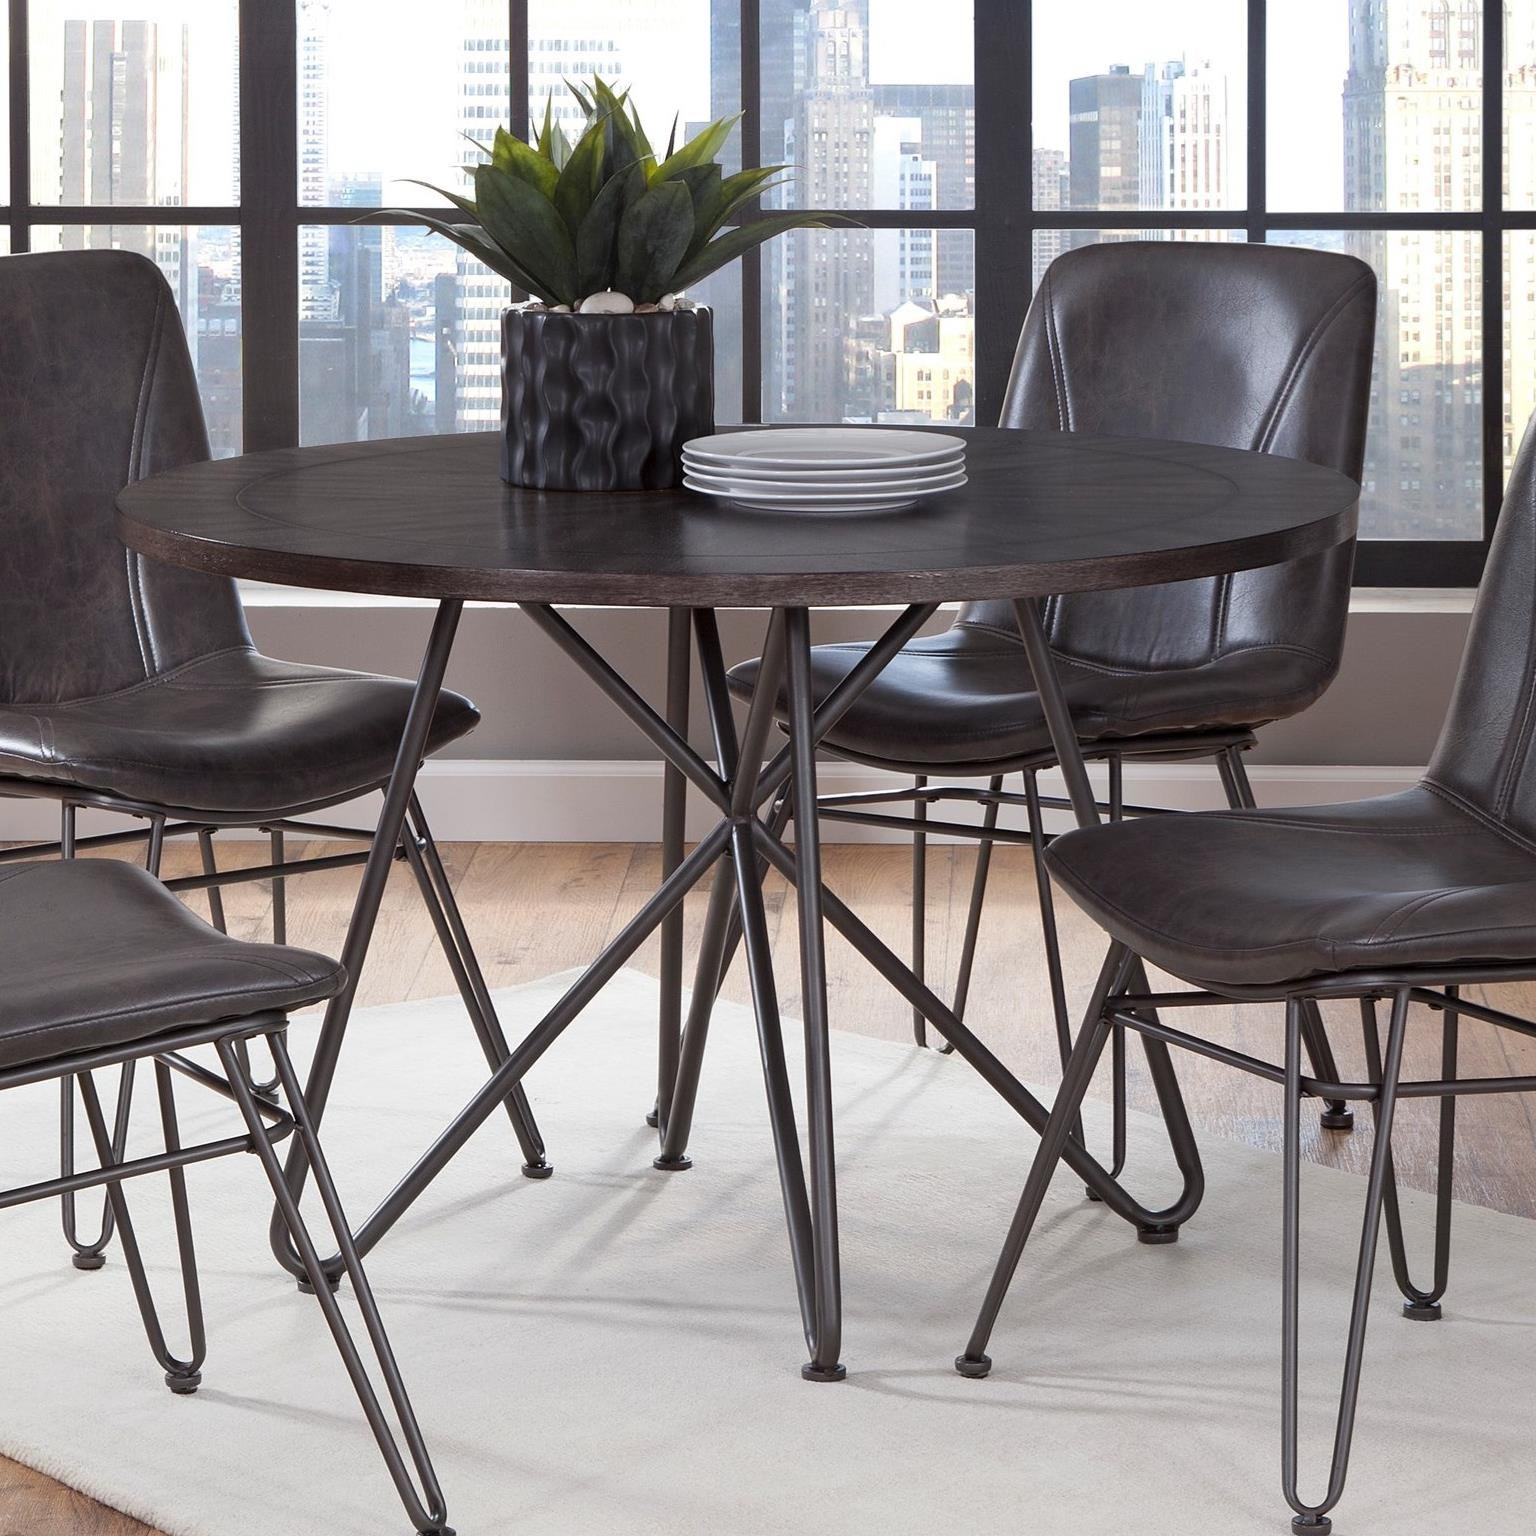 Steve Silver Derek 45 Round Industrial Dining Table With Iron Base Wayside Furniture Dining Tables